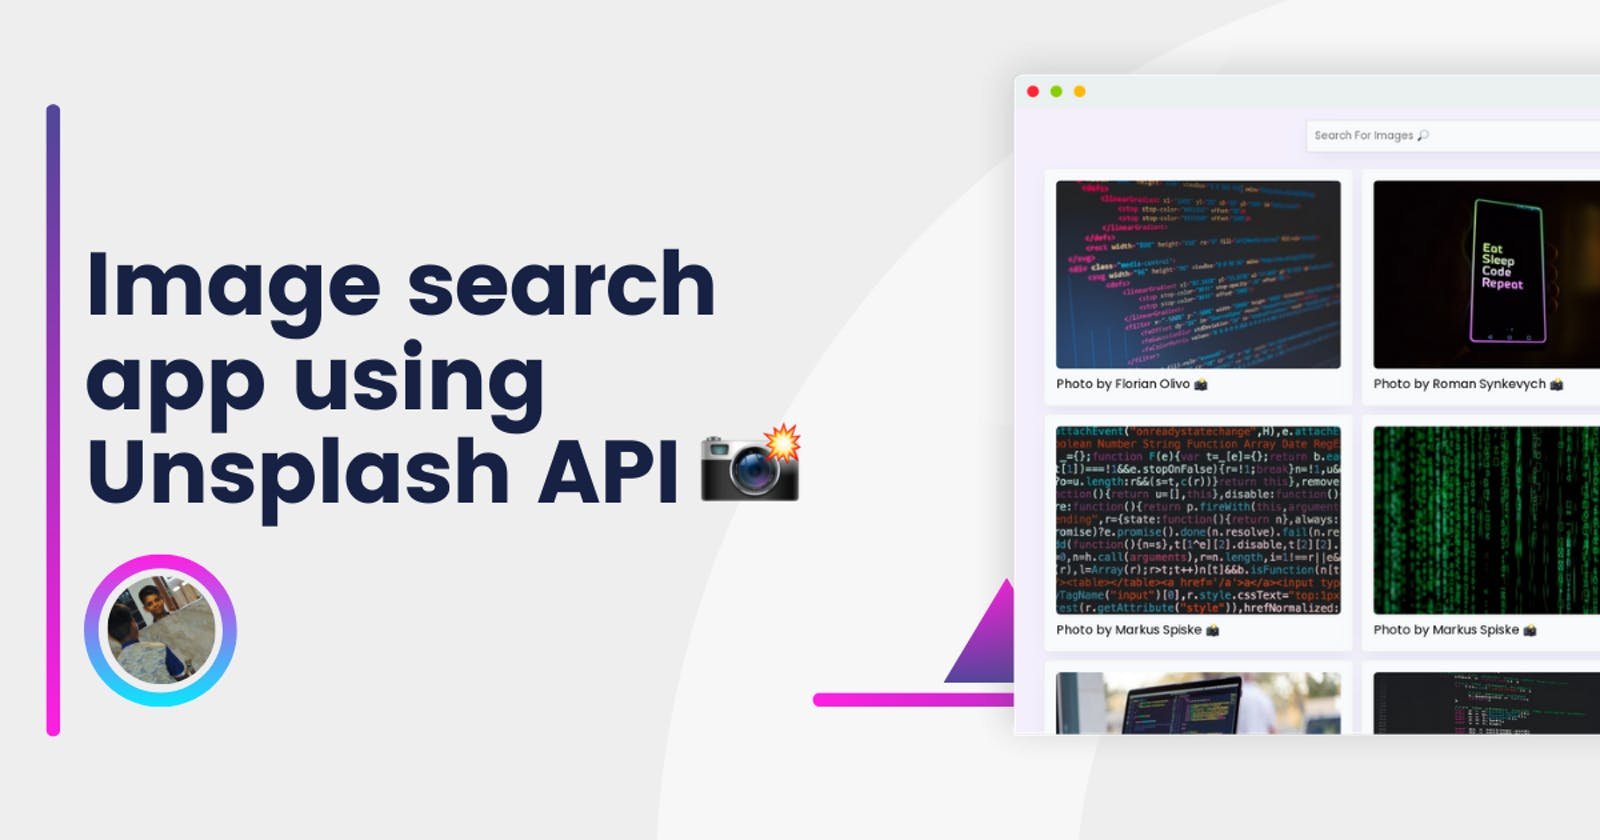 Creating an amazing Image search app using Unsplash API with infinite scrolling 📸